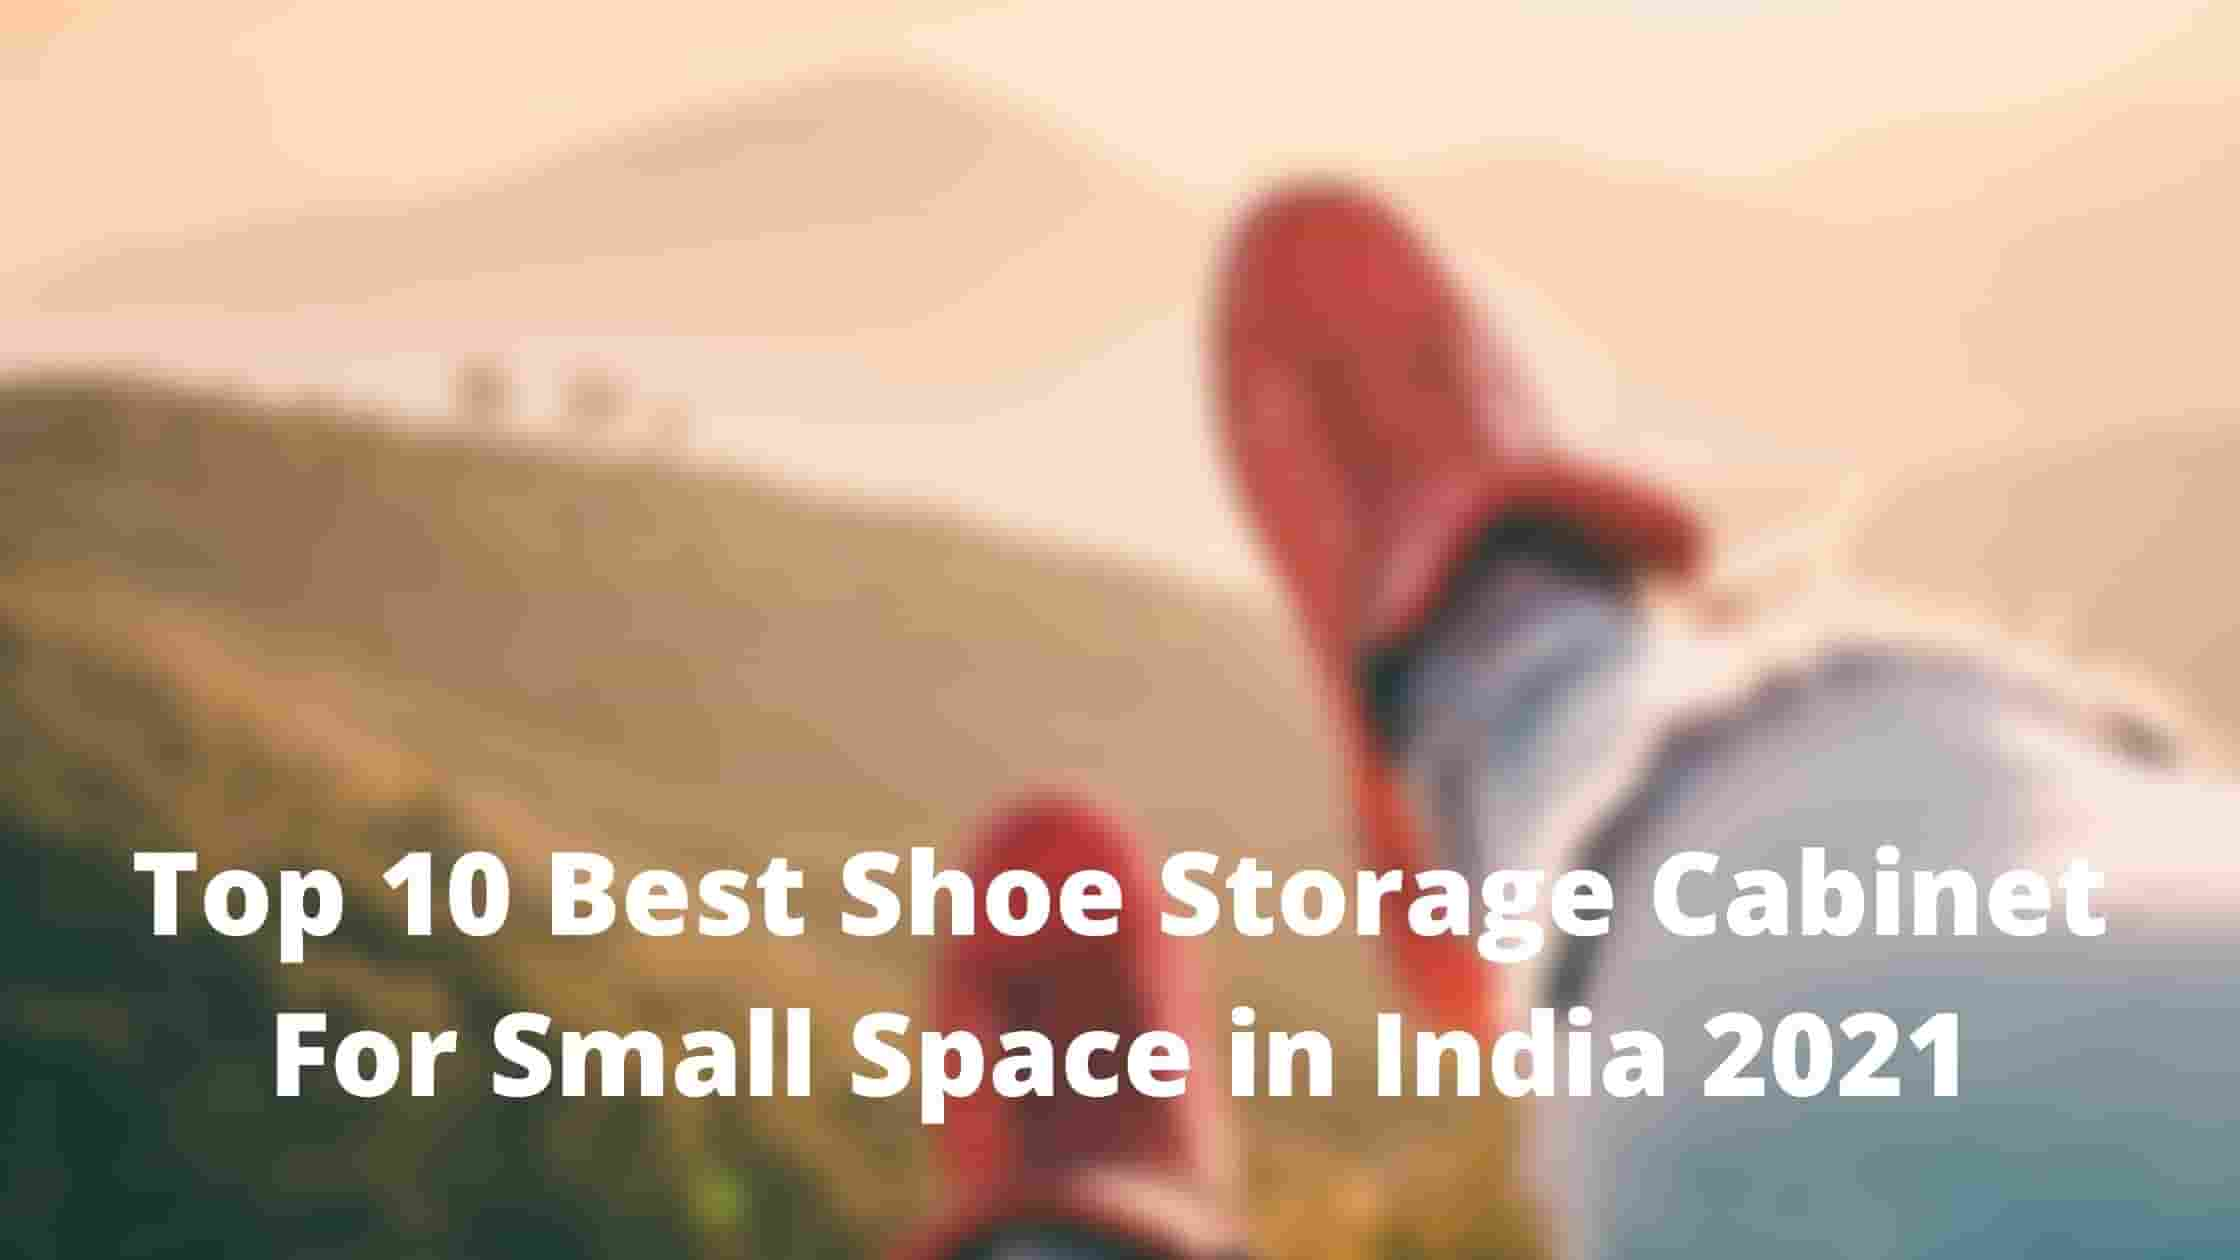 Top 10 Best Shoe Storage Cabinet For Small Space in India 2021